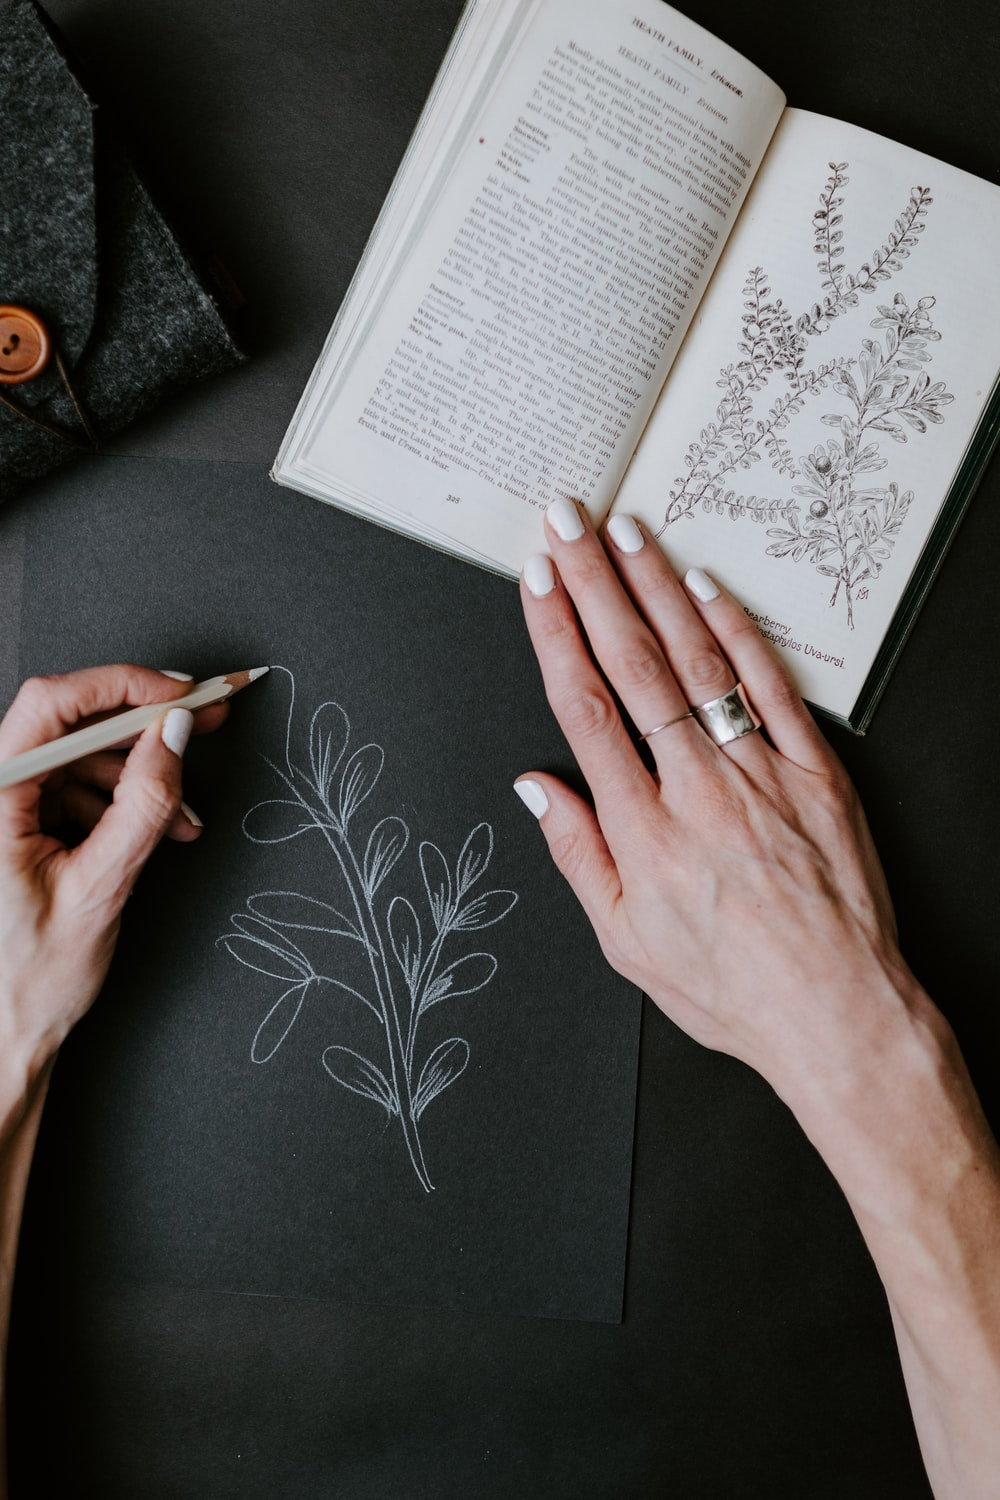 person wearing silver ring holding book